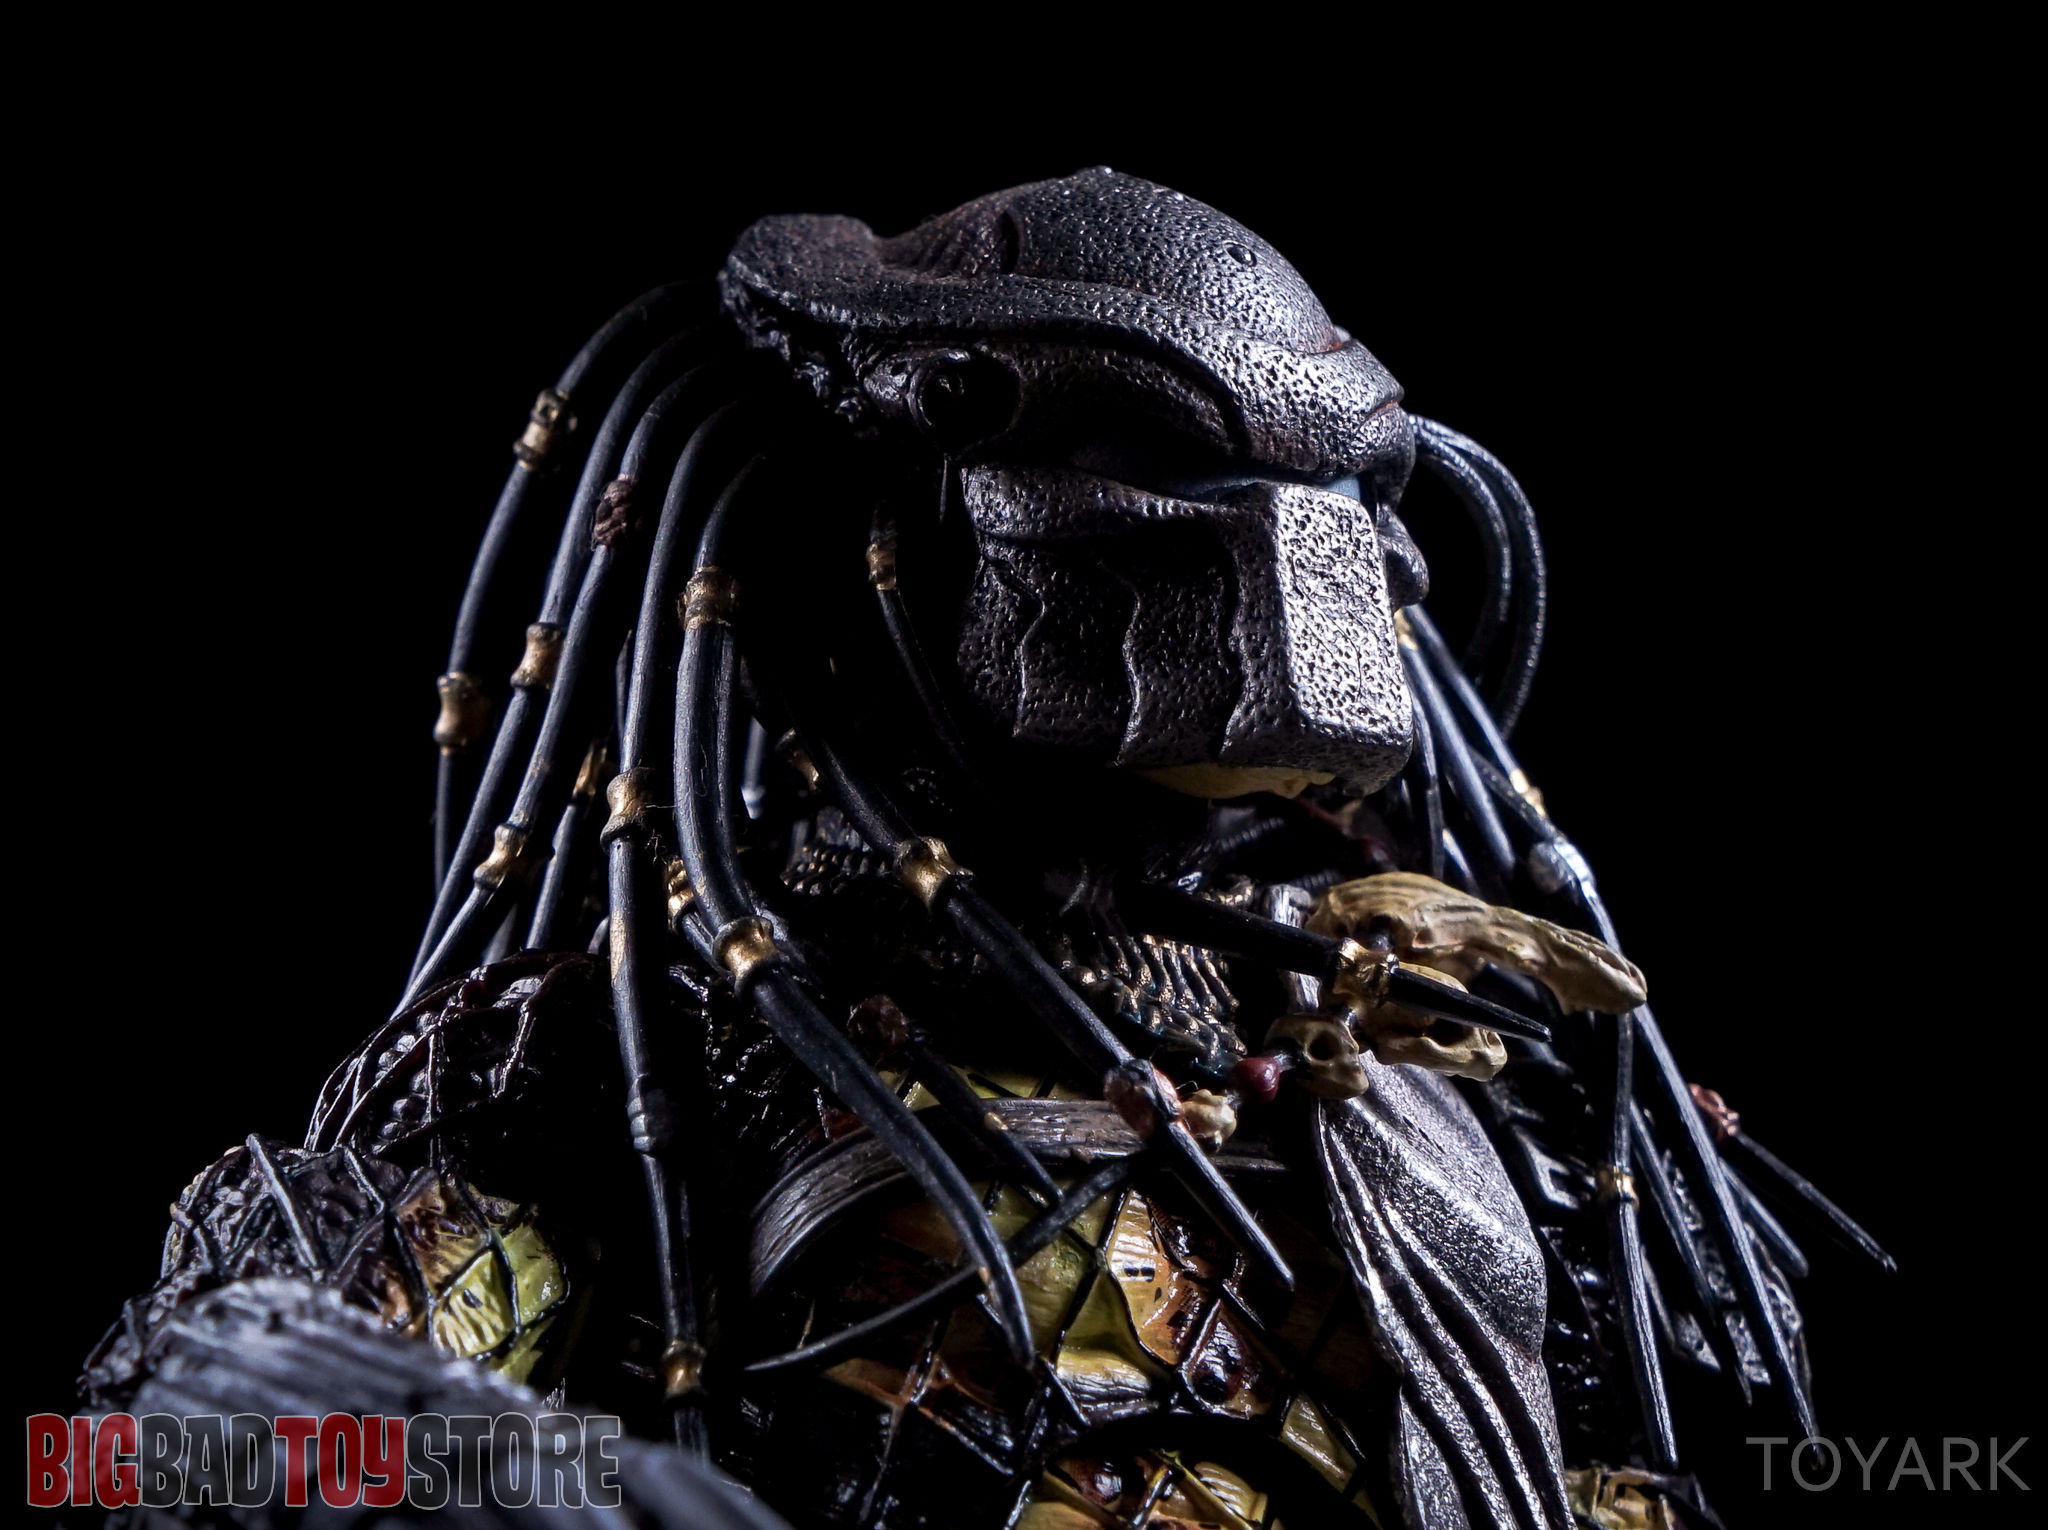 http://news.toyark.com/wp-content/uploads/sites/4/2016/05/NECA-Predator-Series-15-AvP-068.jpg